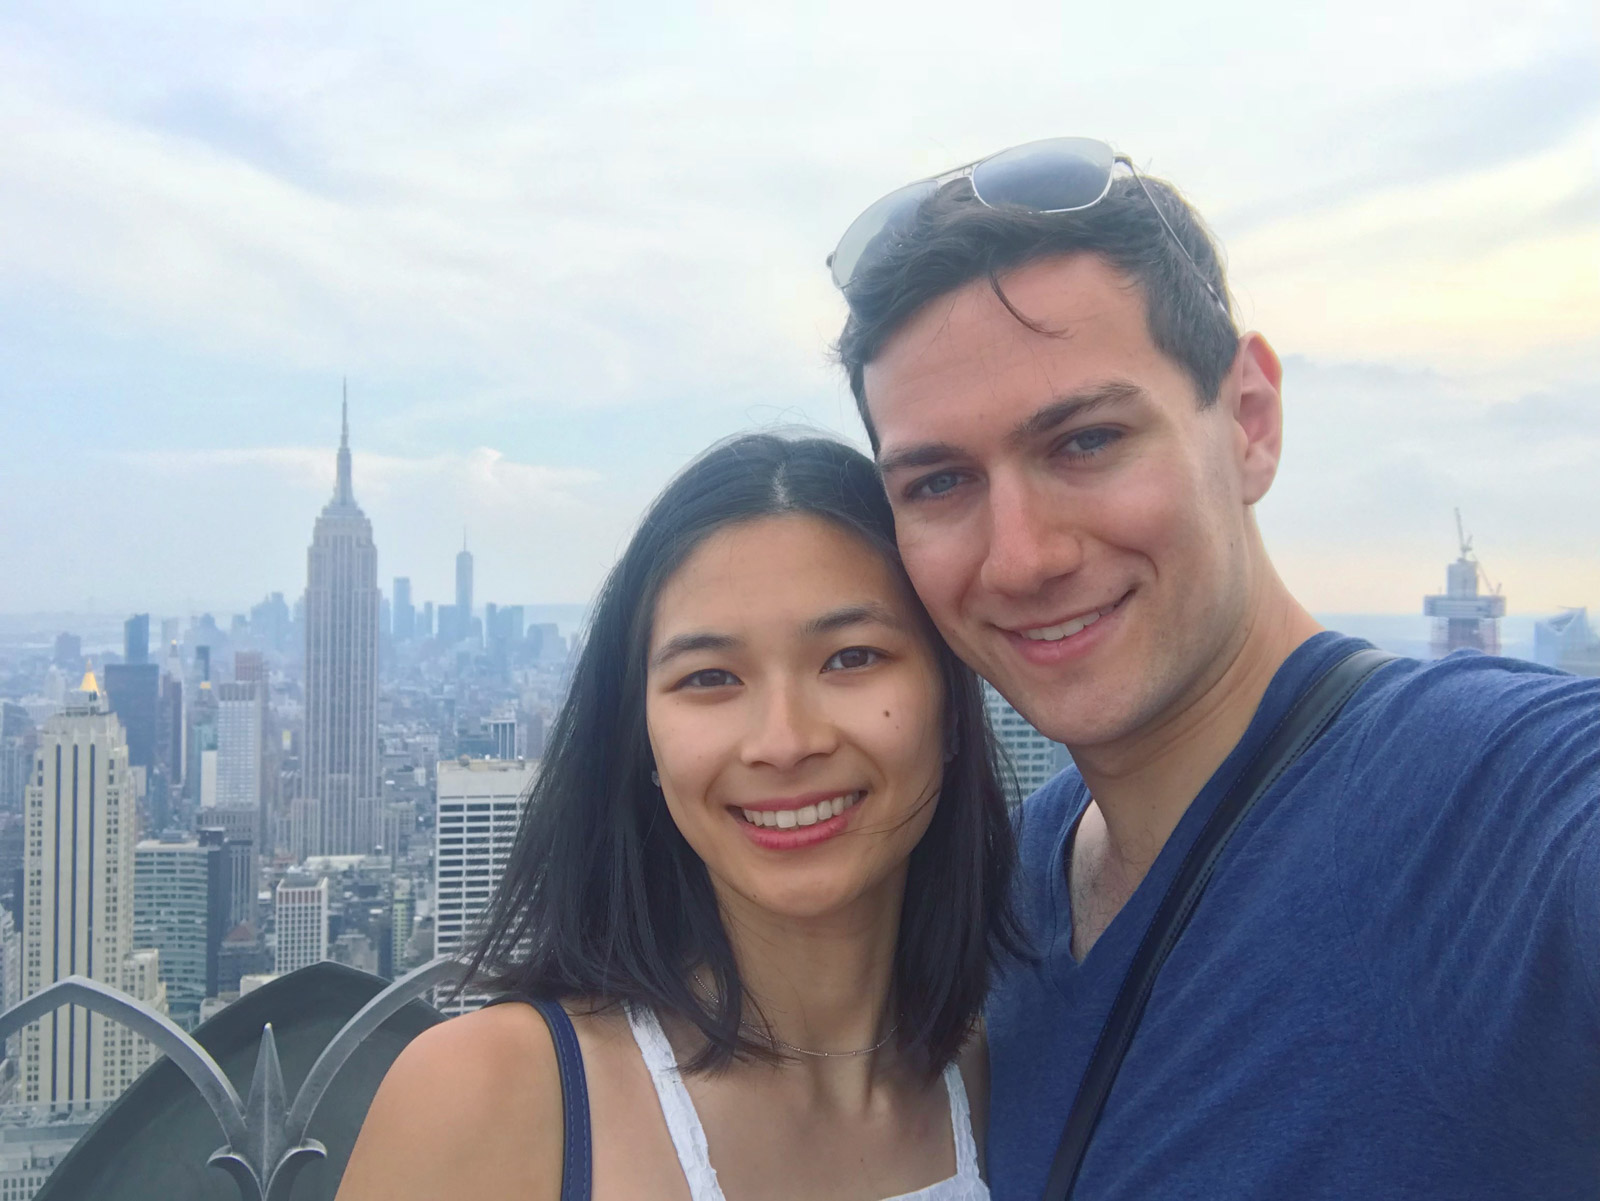 A selfie of a man and woman, smiling. The buildings of New York City are in the background.